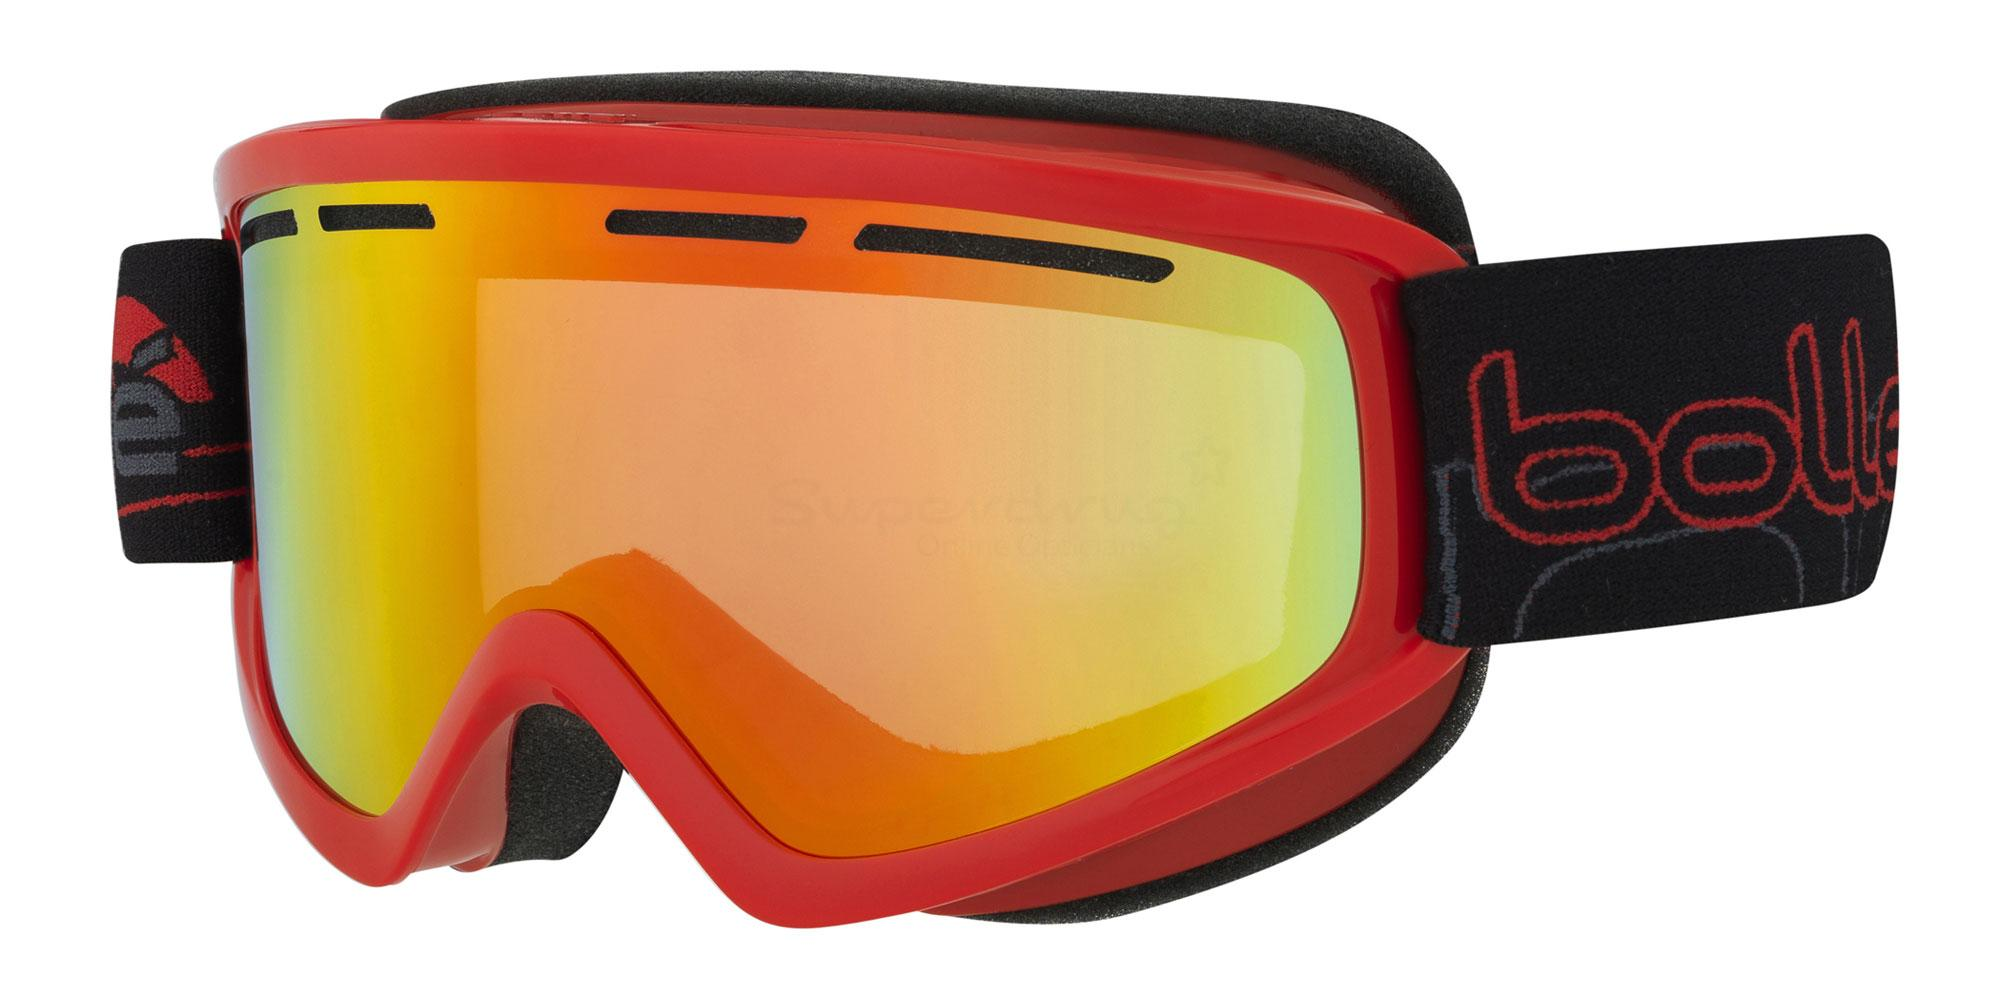 21481 SCHUSS Goggles, Bolle